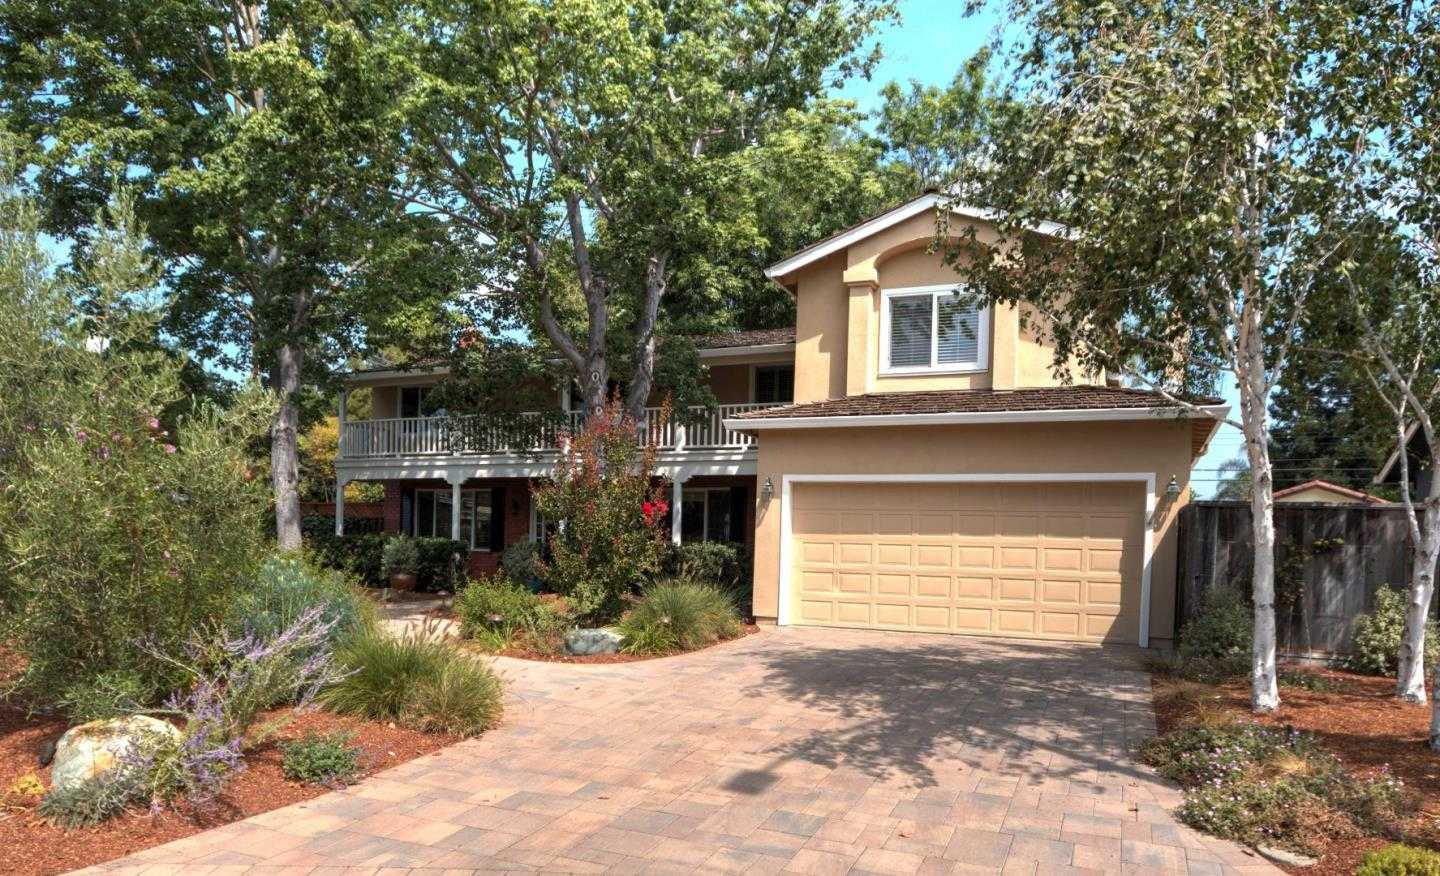 $2,698,000 - 5Br/3Ba -  for Sale in Mountain View